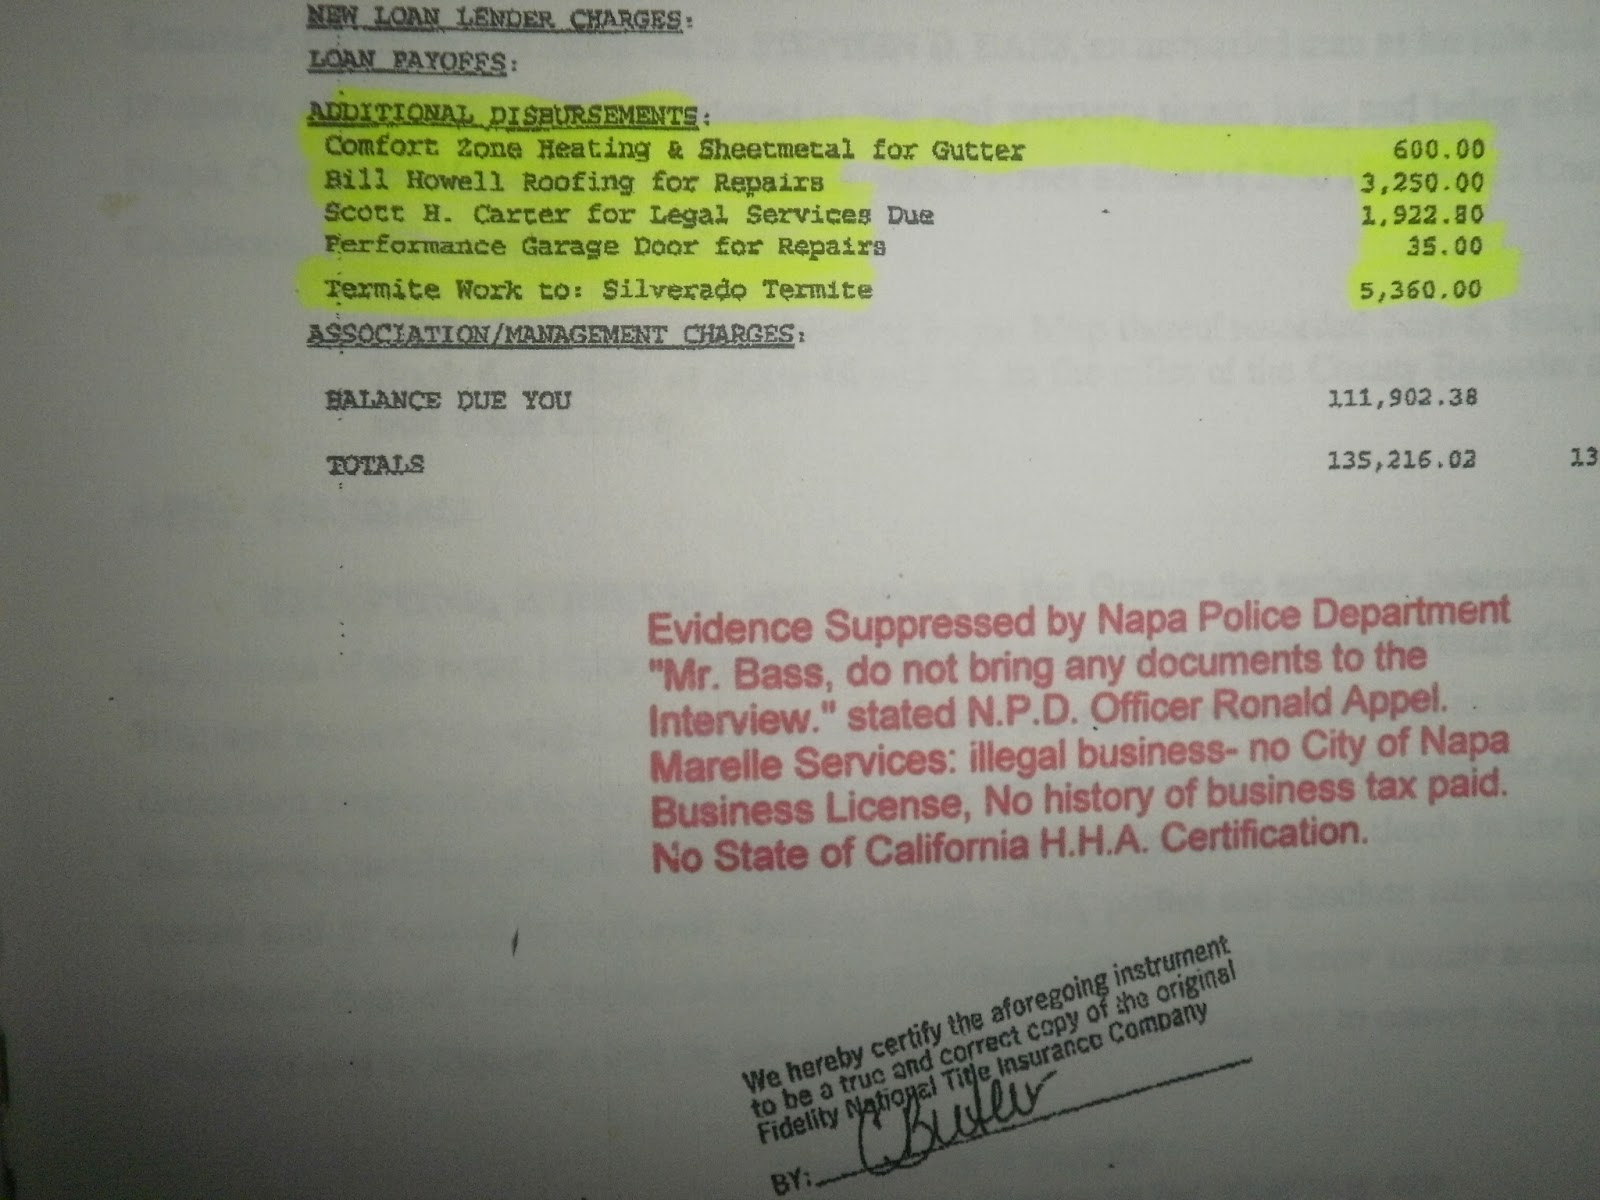 napa realtor catherine fetzer lied to police involving a felony she paid those costs fetzer as shown on your closing statement below three taps for olga image archives elder abuse in the usa